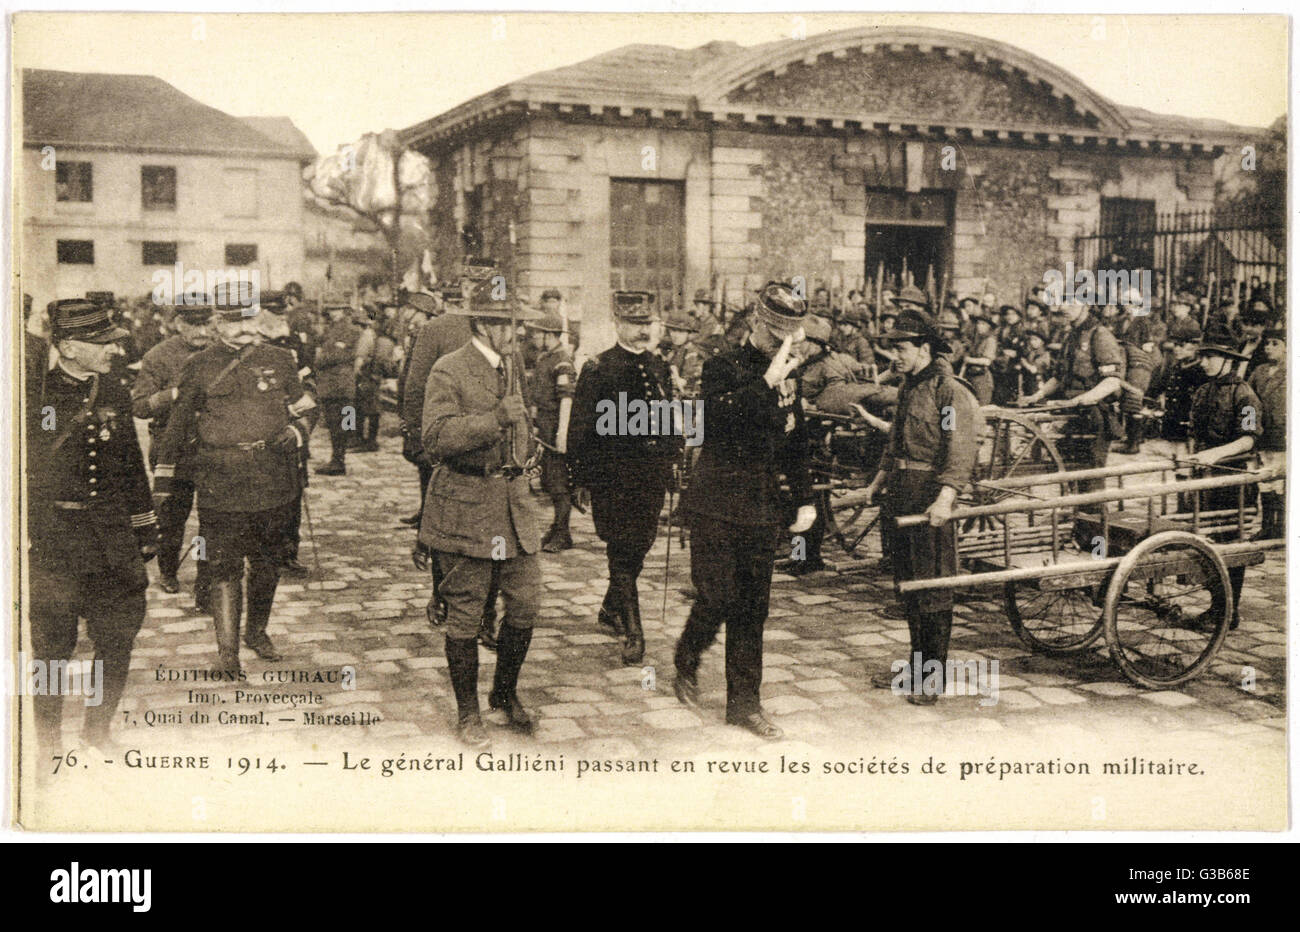 French military commander  GALLIENI reviews organisations  involved in the preparations  for war.       Date: 1914 - Stock Image